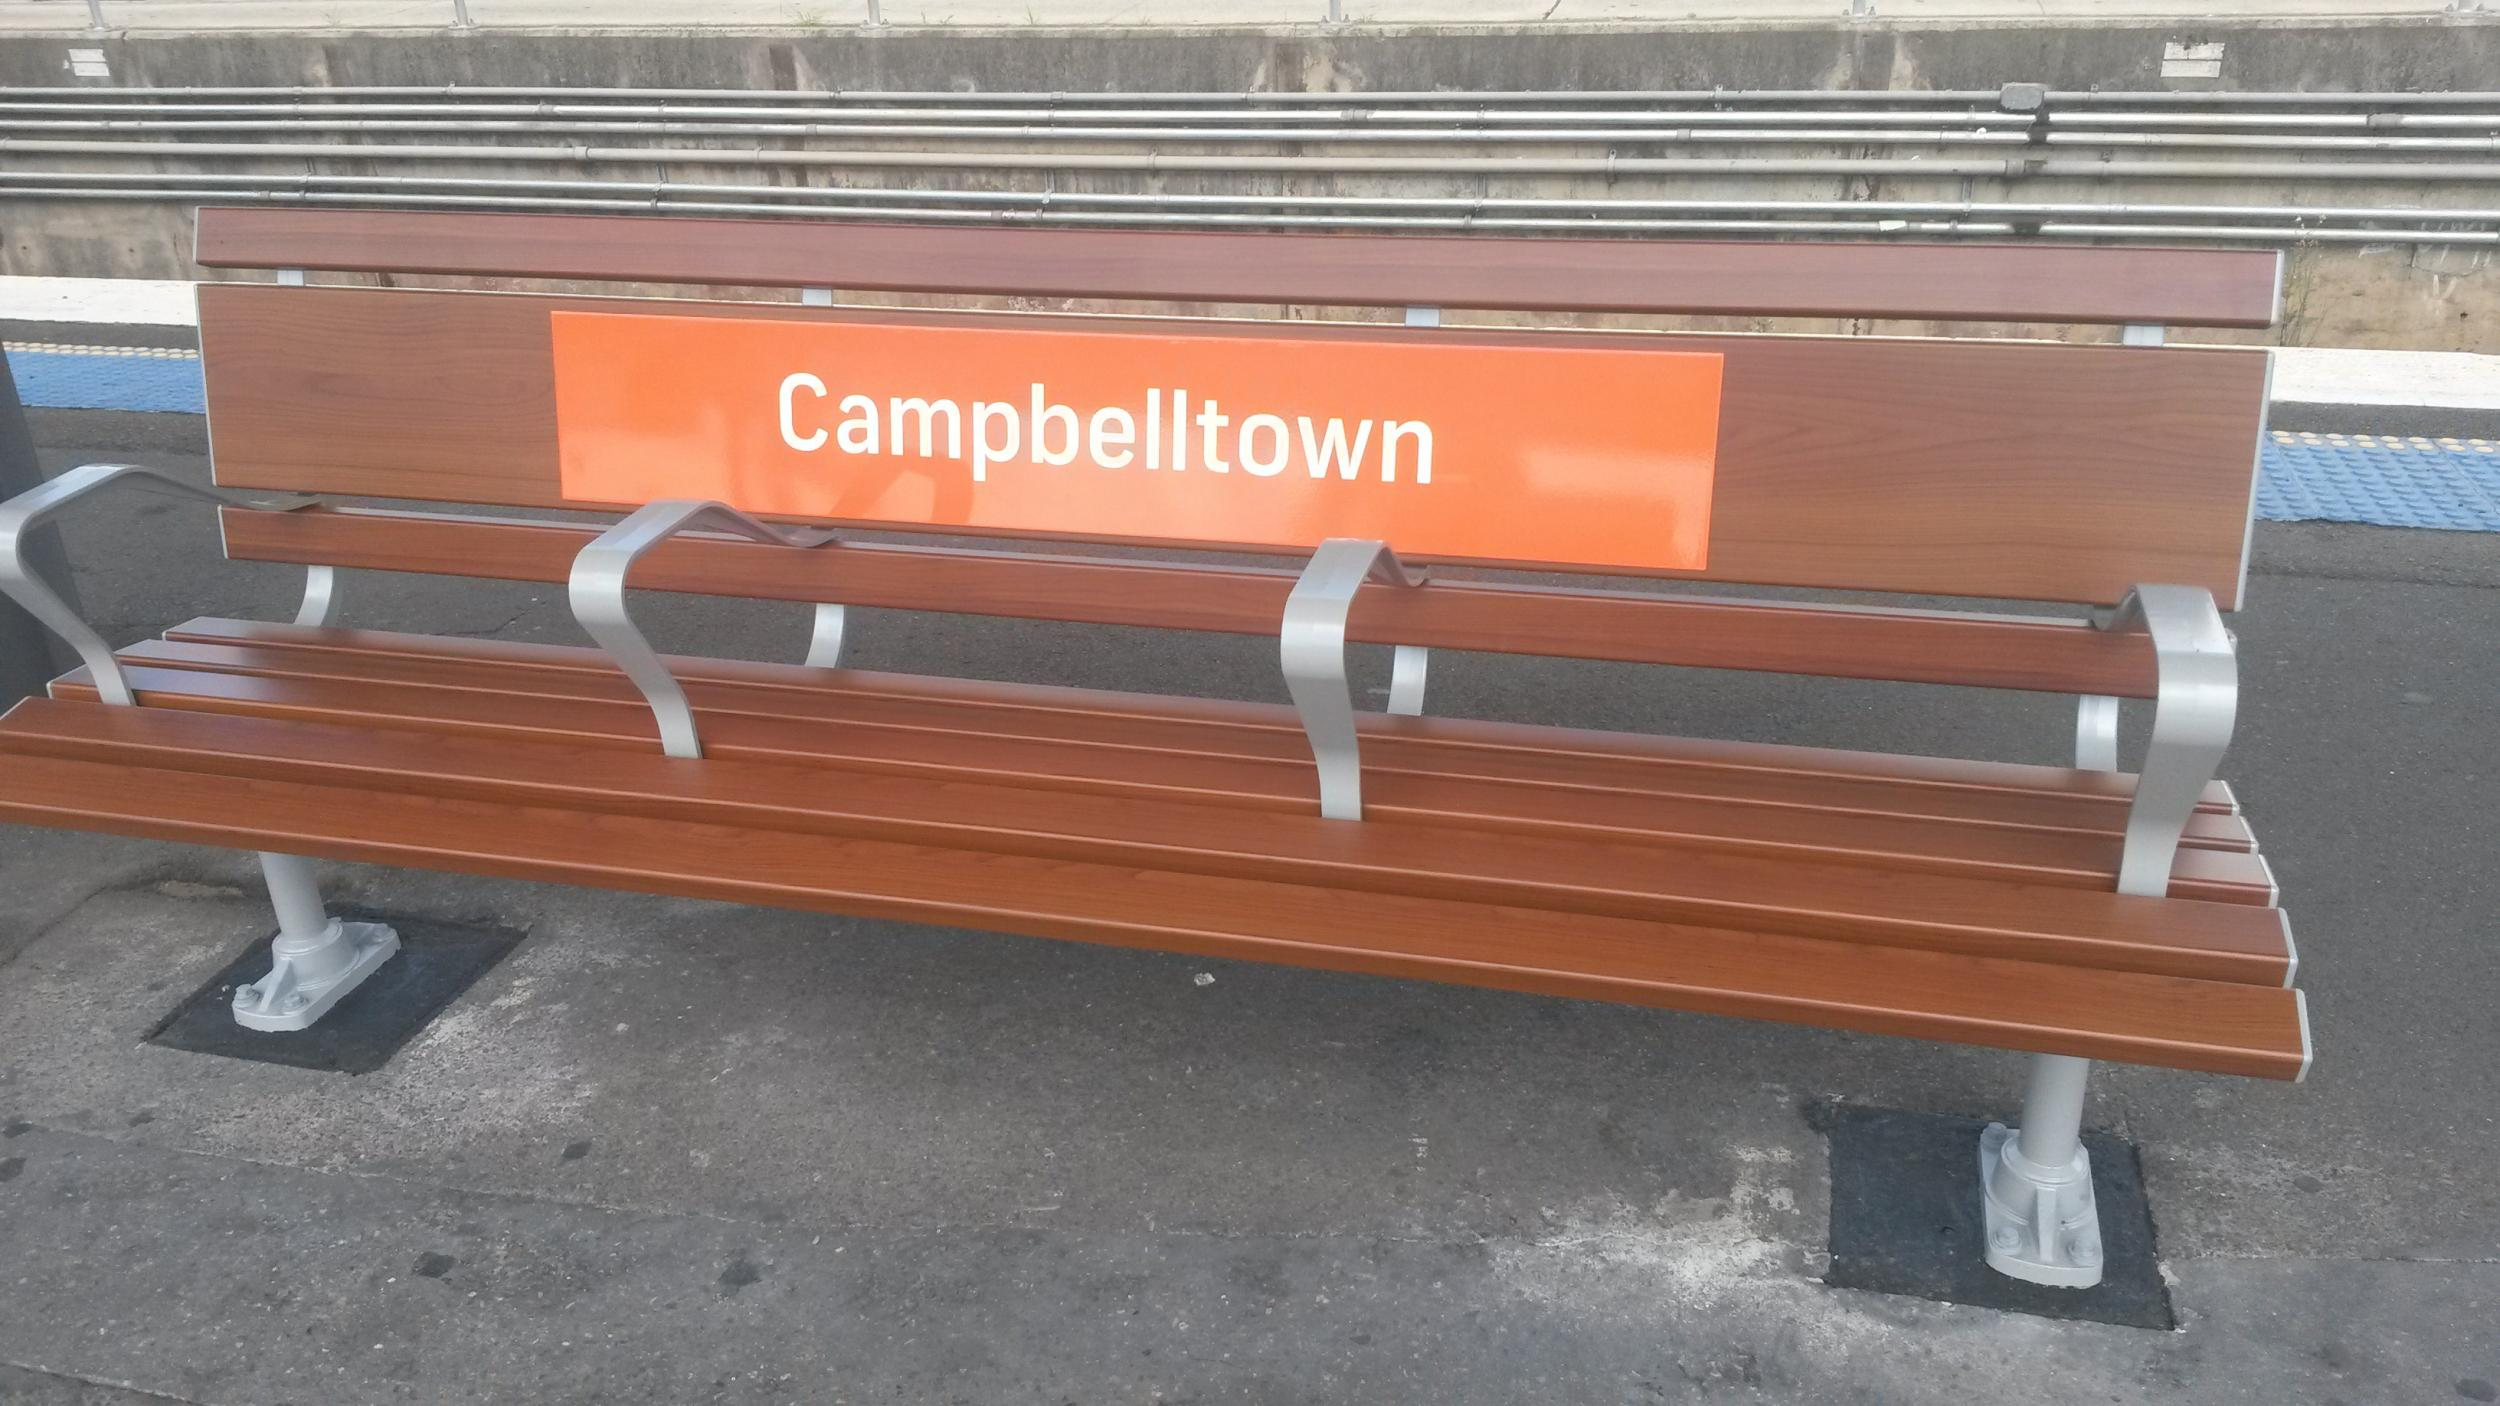 Campbelltown Train Station signage - DecoSign